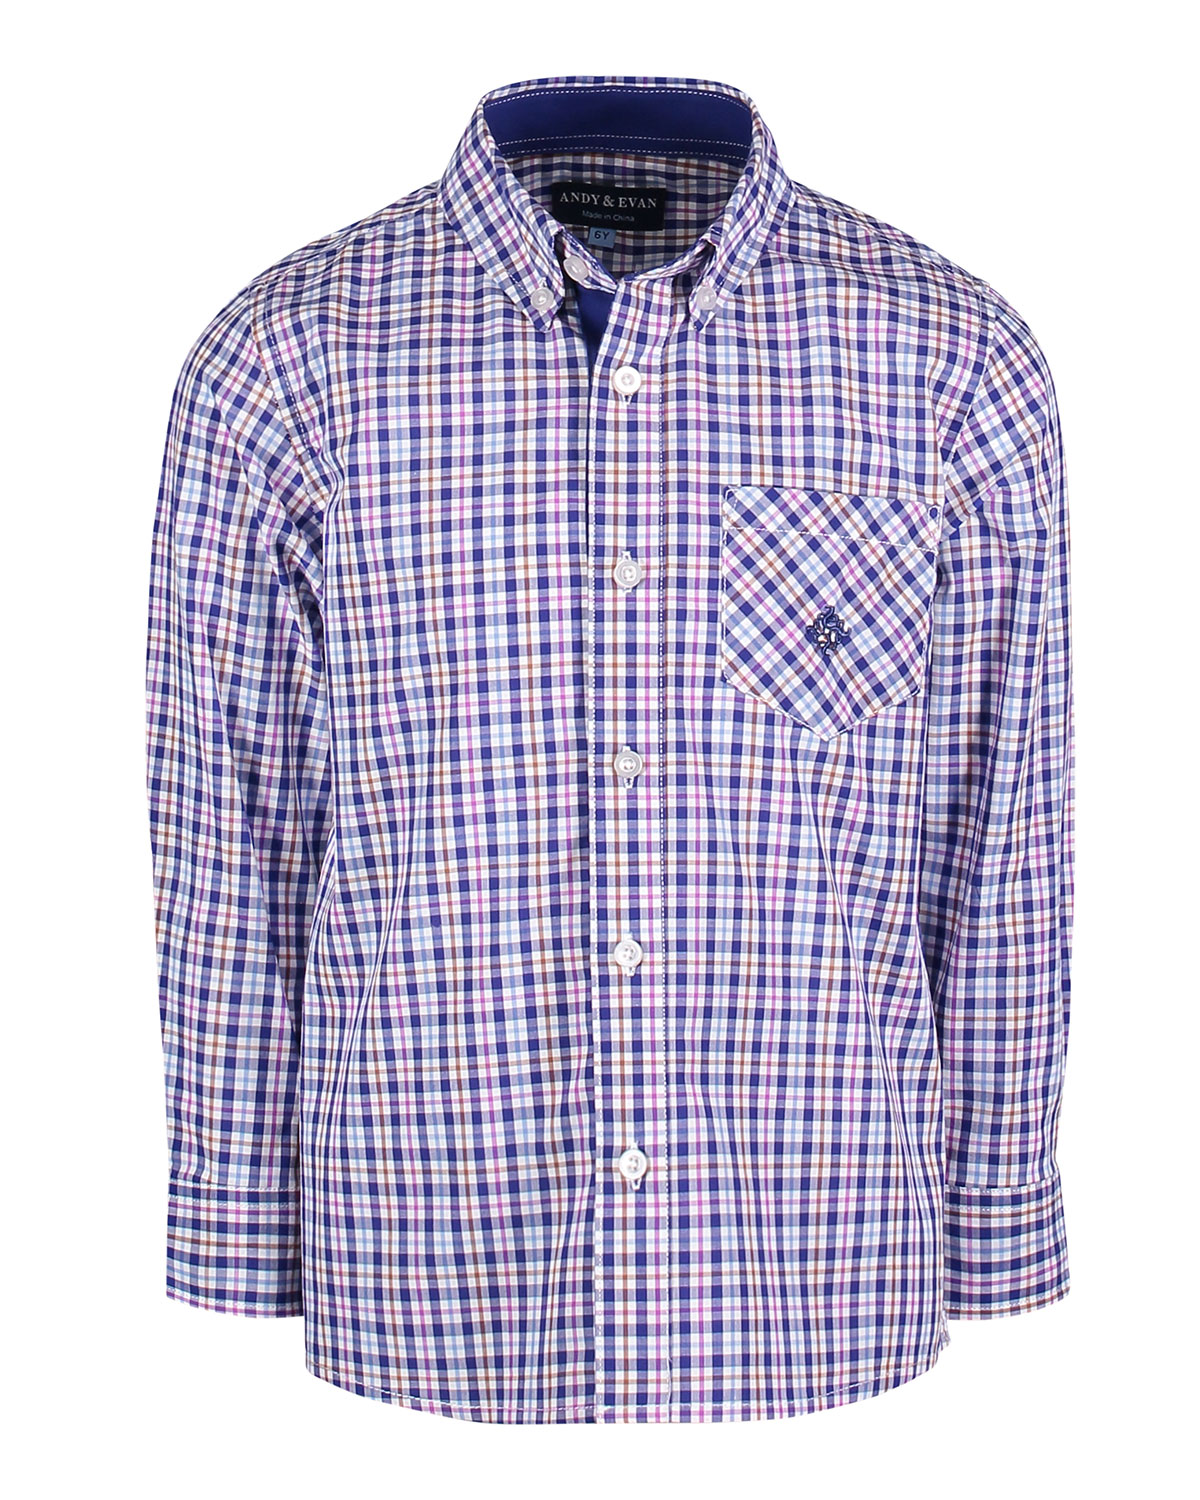 ANDY & EVAN Long-Sleeve Plaid Button-Down Shirt, Size 2-7 in Blue